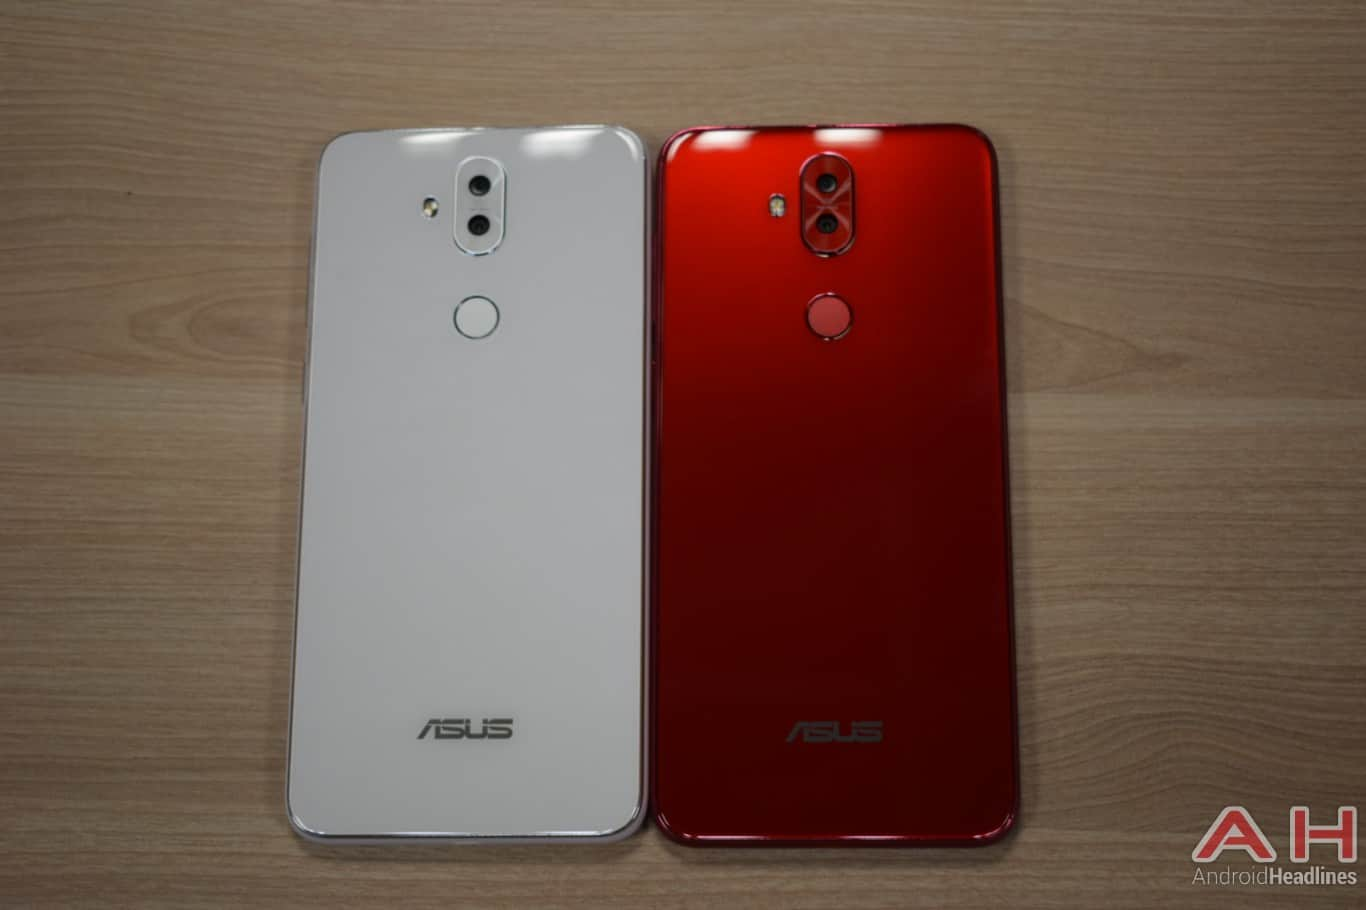 AH ASUS ZenFone 5Q hands on MWC 2018 11